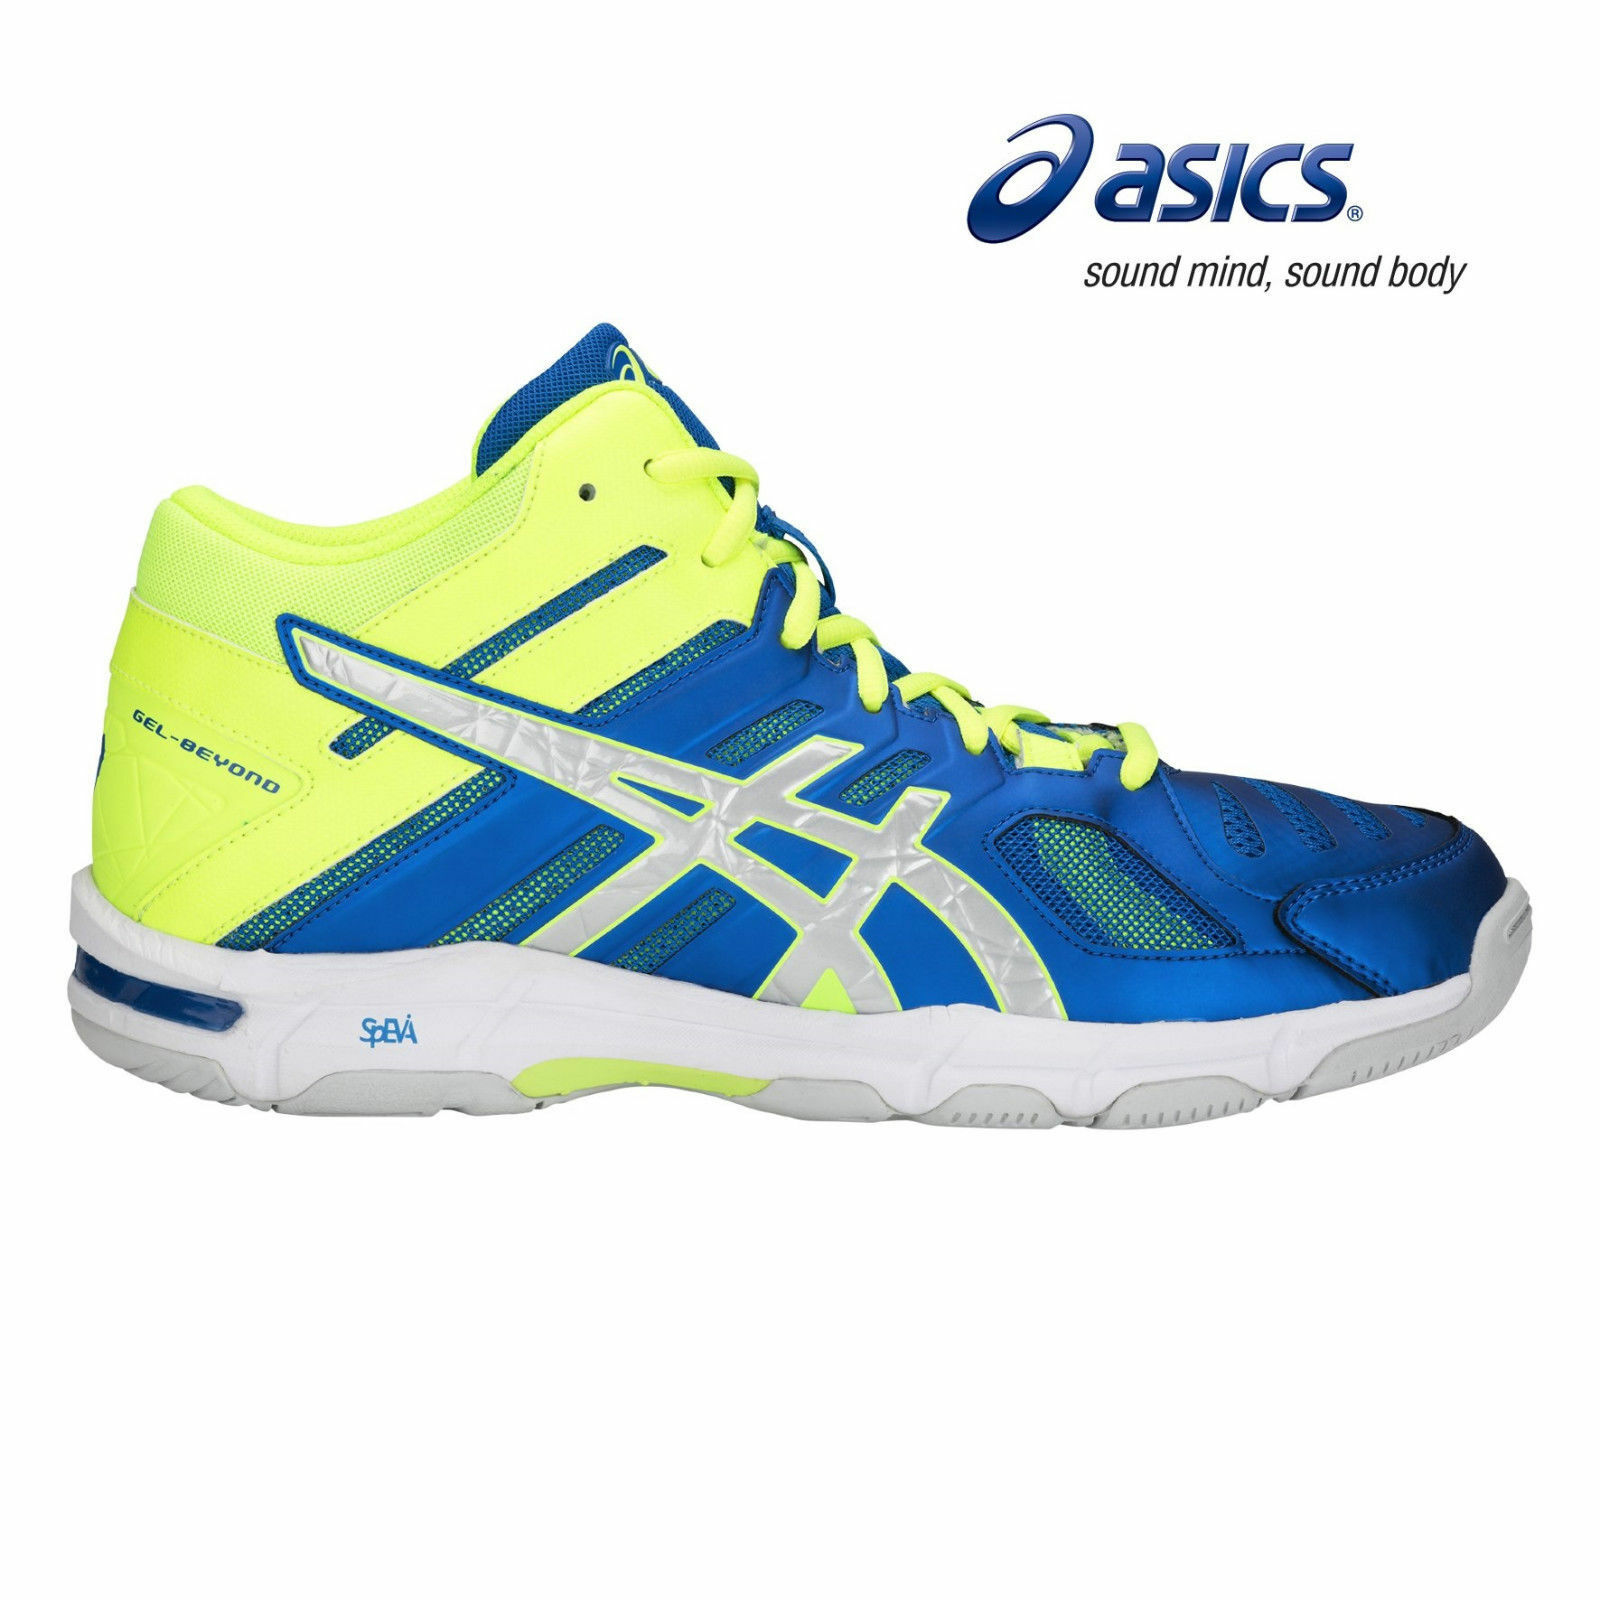 Volleyball Shoes Volleyball Schuhe ASICS GEL BEYOND 5 MT 2018 - Squash Handball